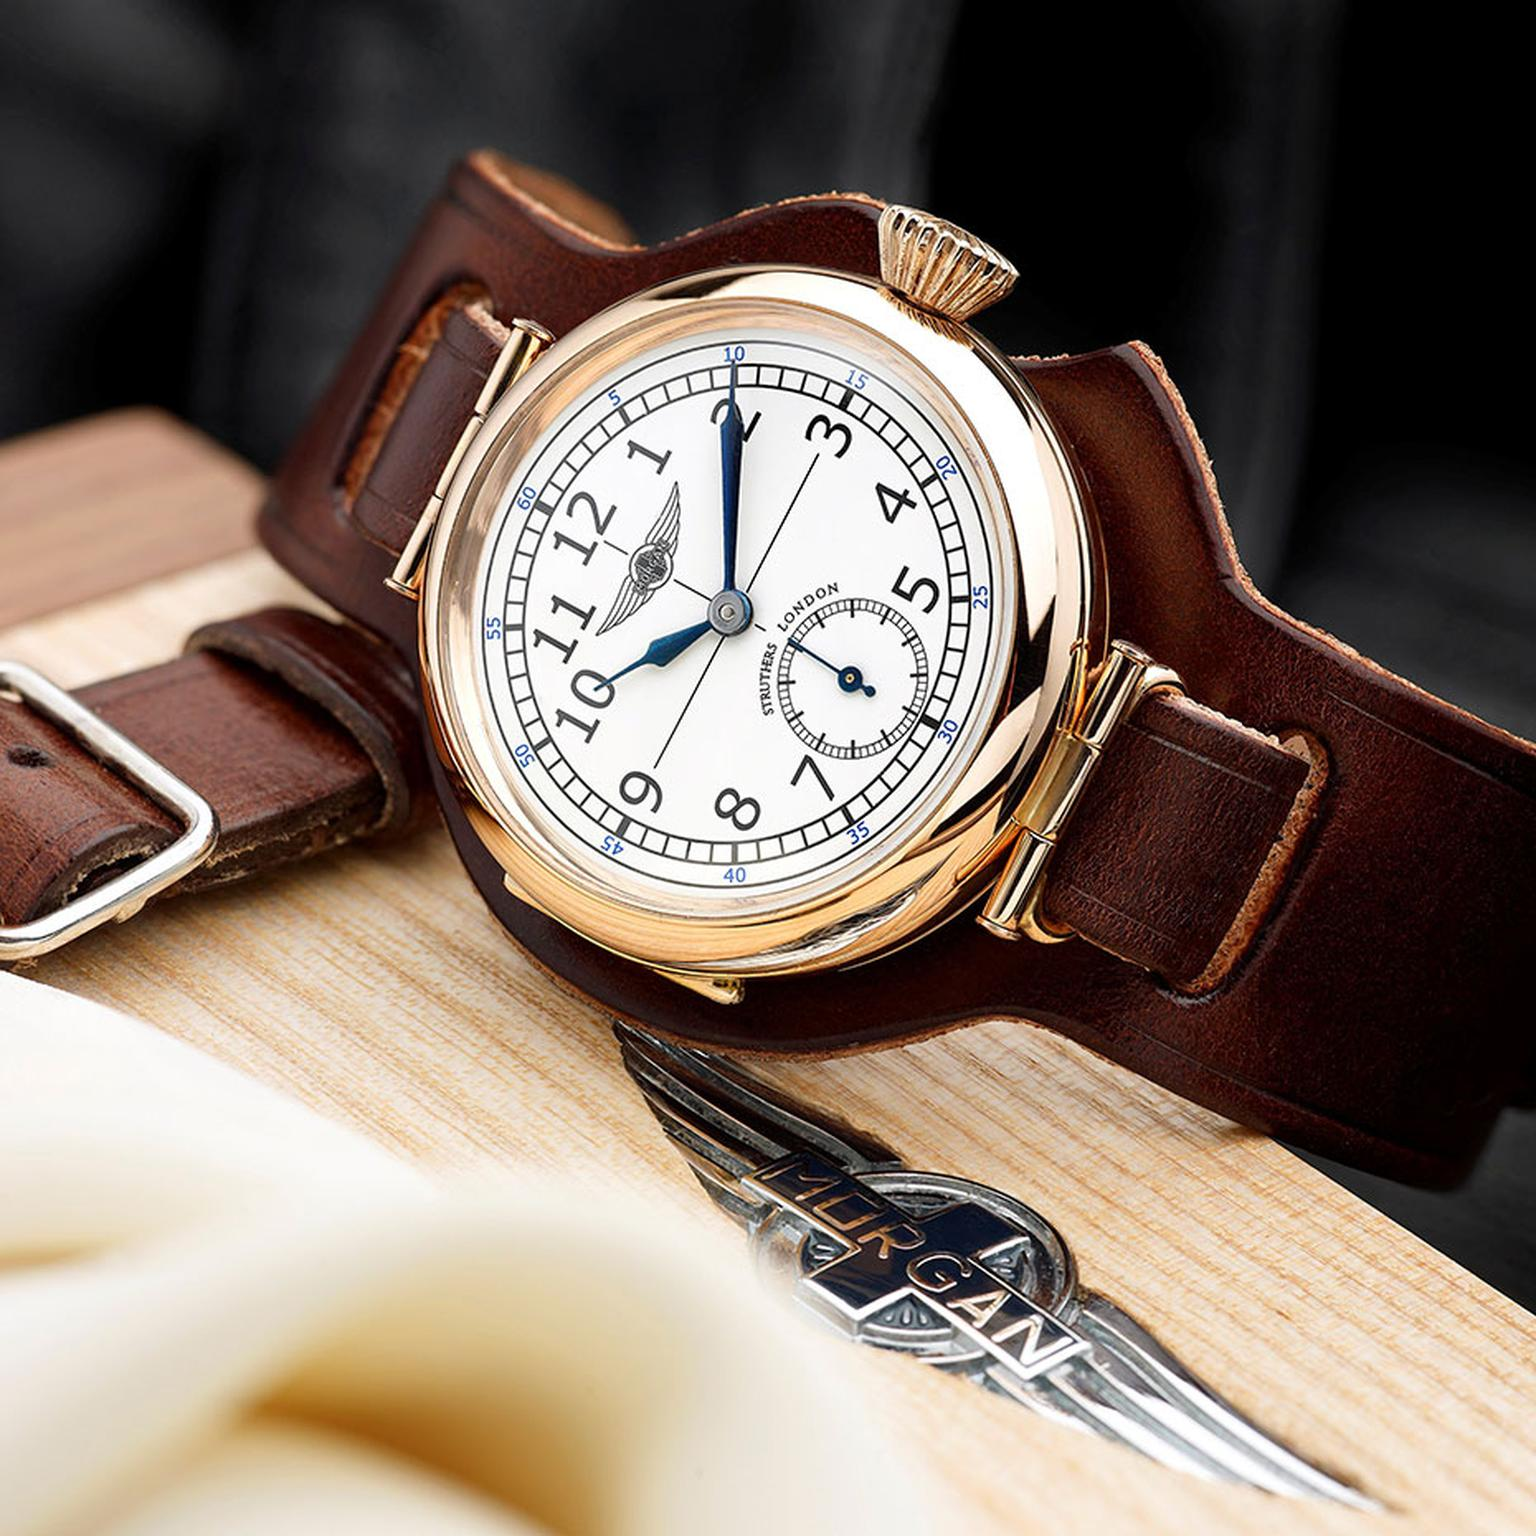 Struthers London for Morgan watches feature two limited edition timepieces, inspired by the traditional trench style cars of the early 1900's.